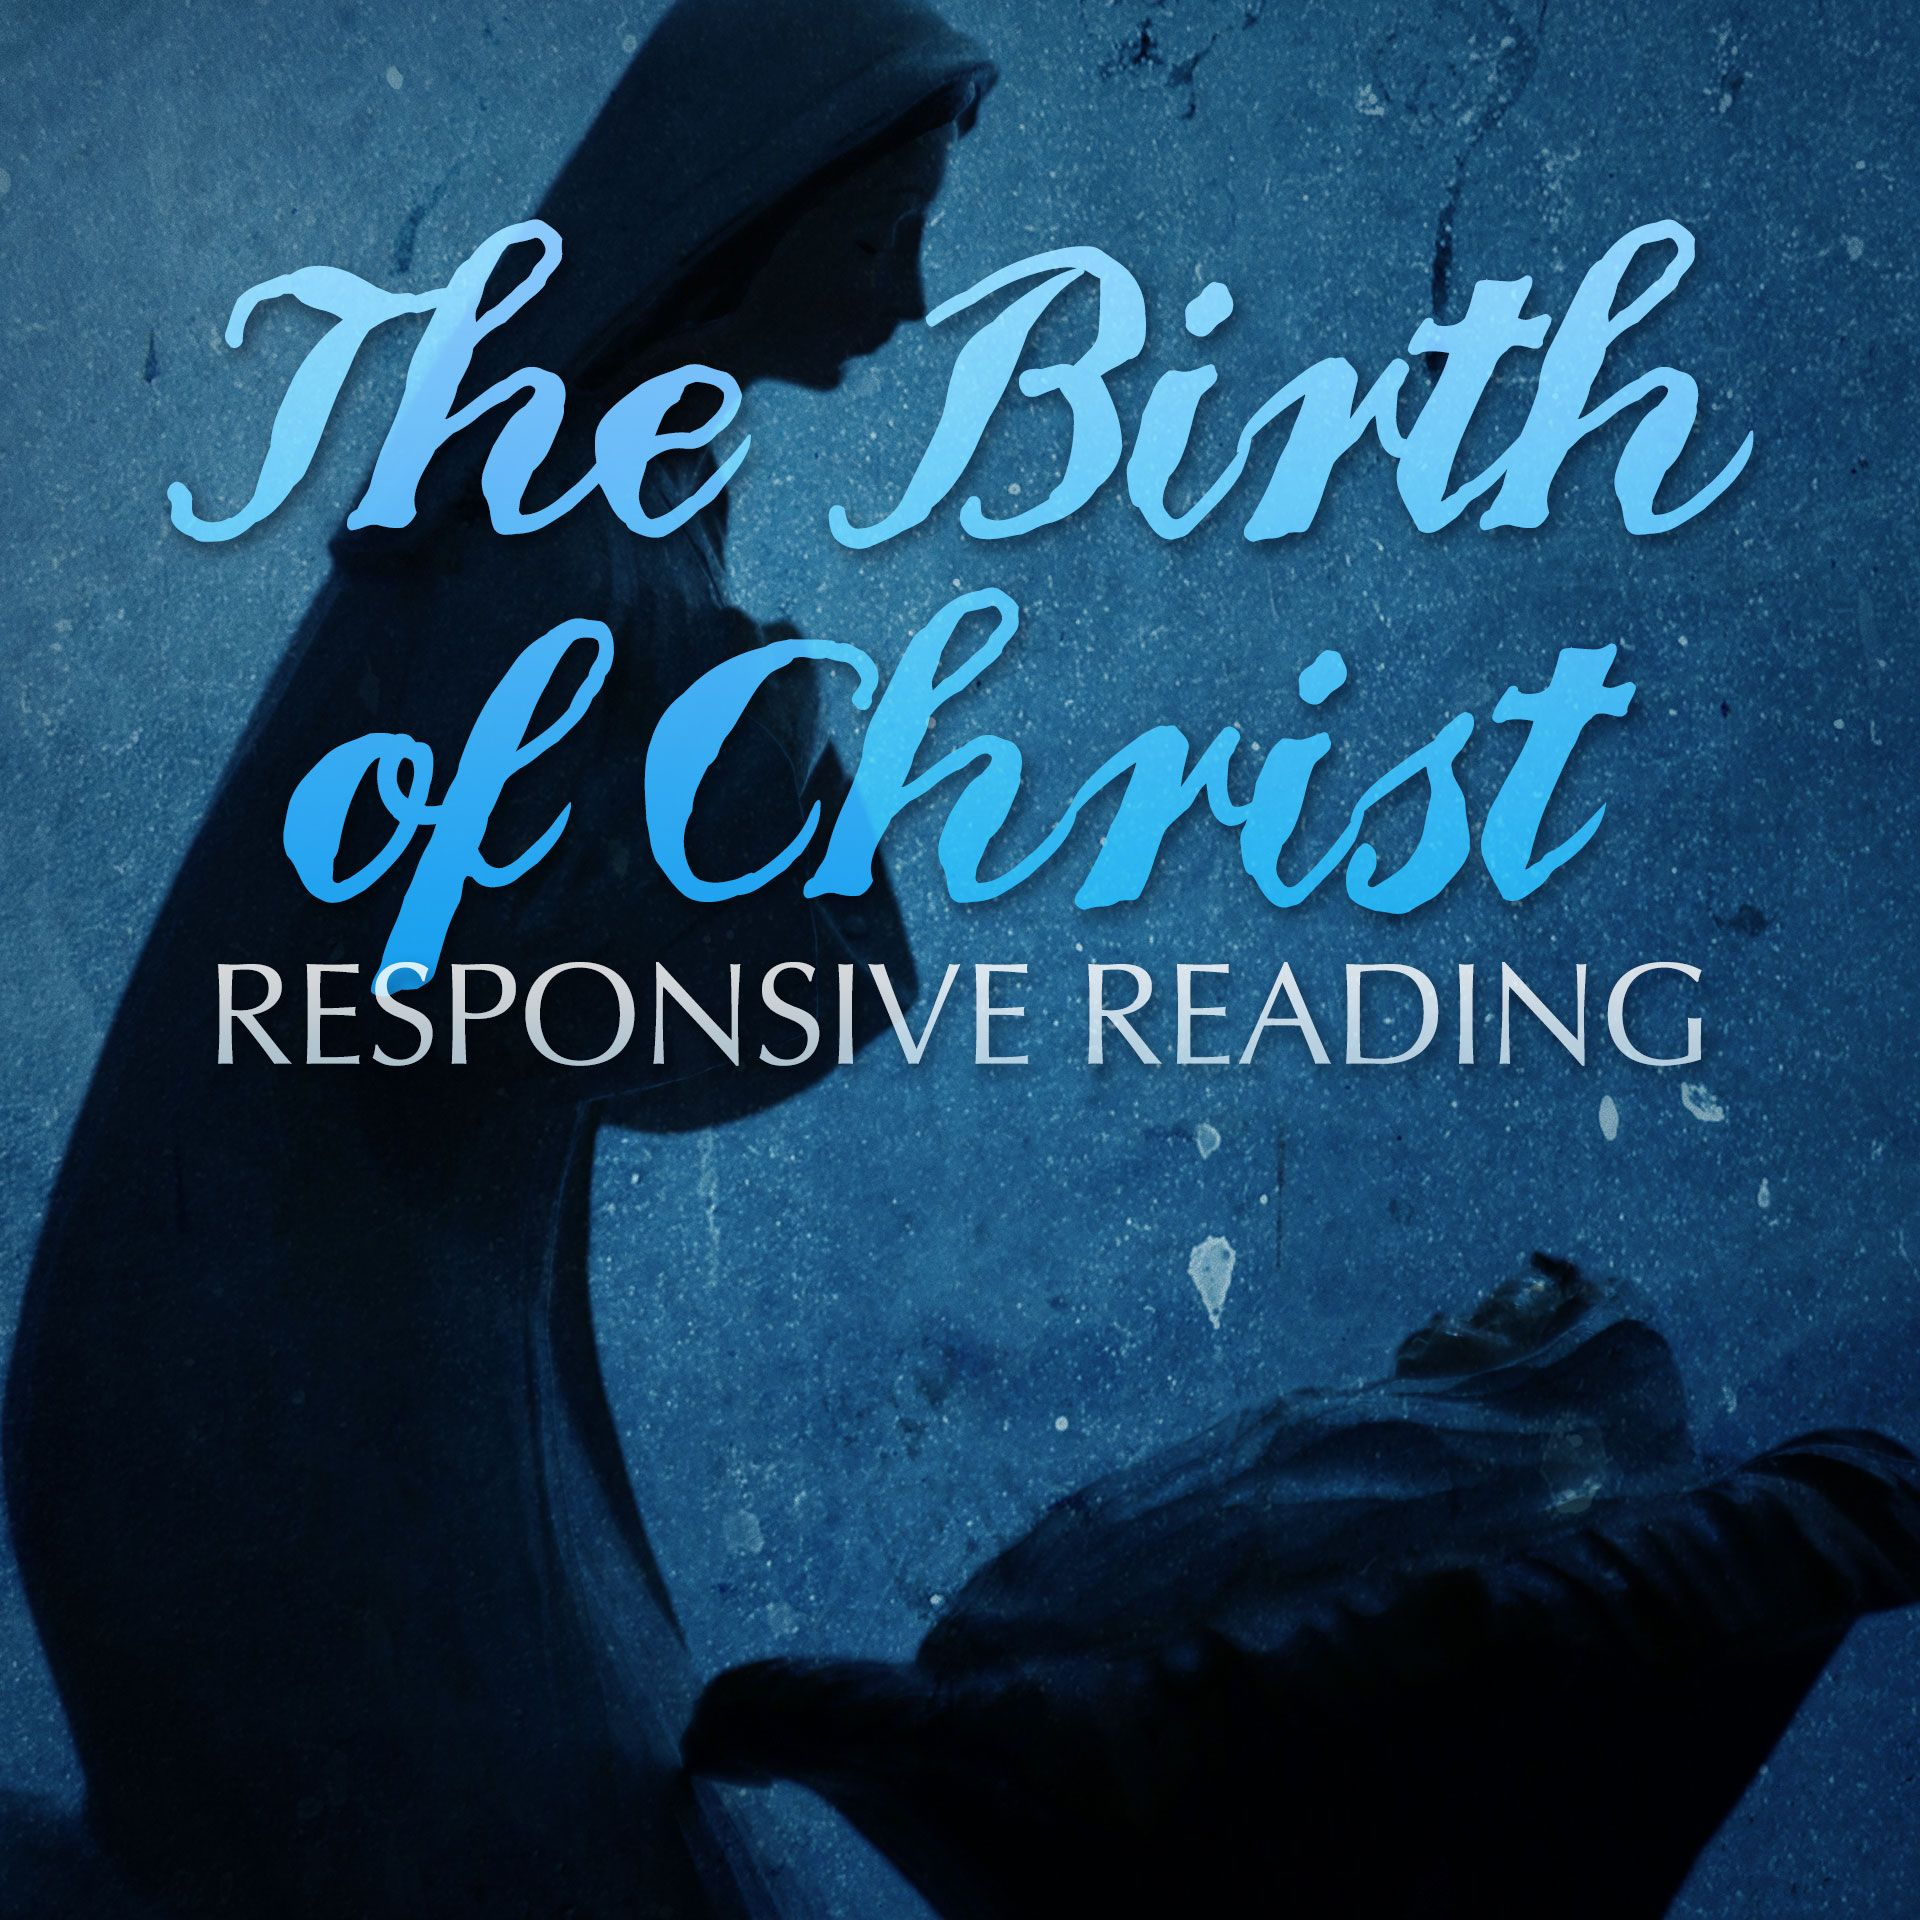 responsive readings for family and friends day